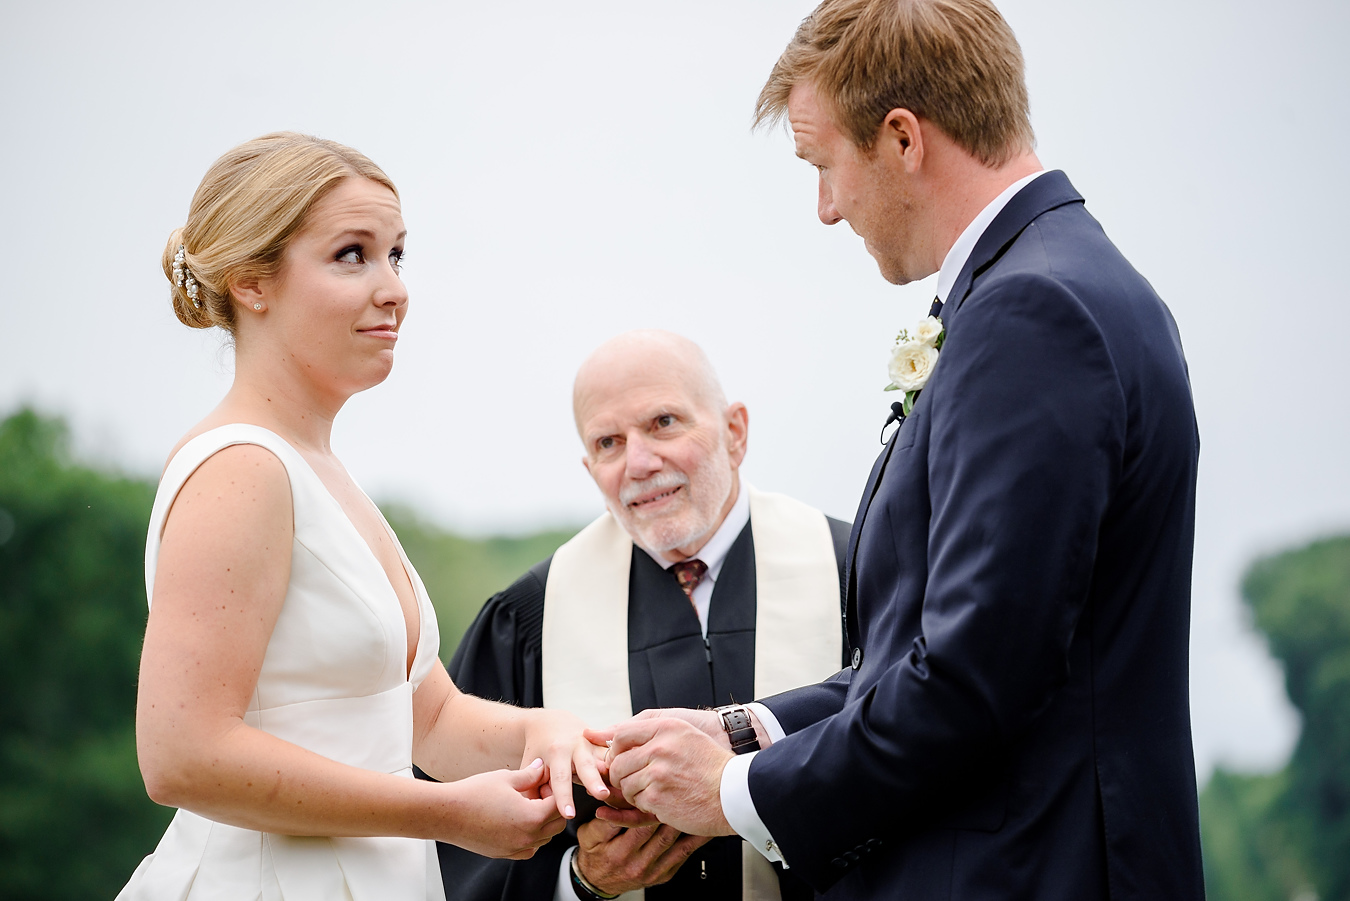 outdoor classic wedding ceremony at the crane estate in ipswich ma